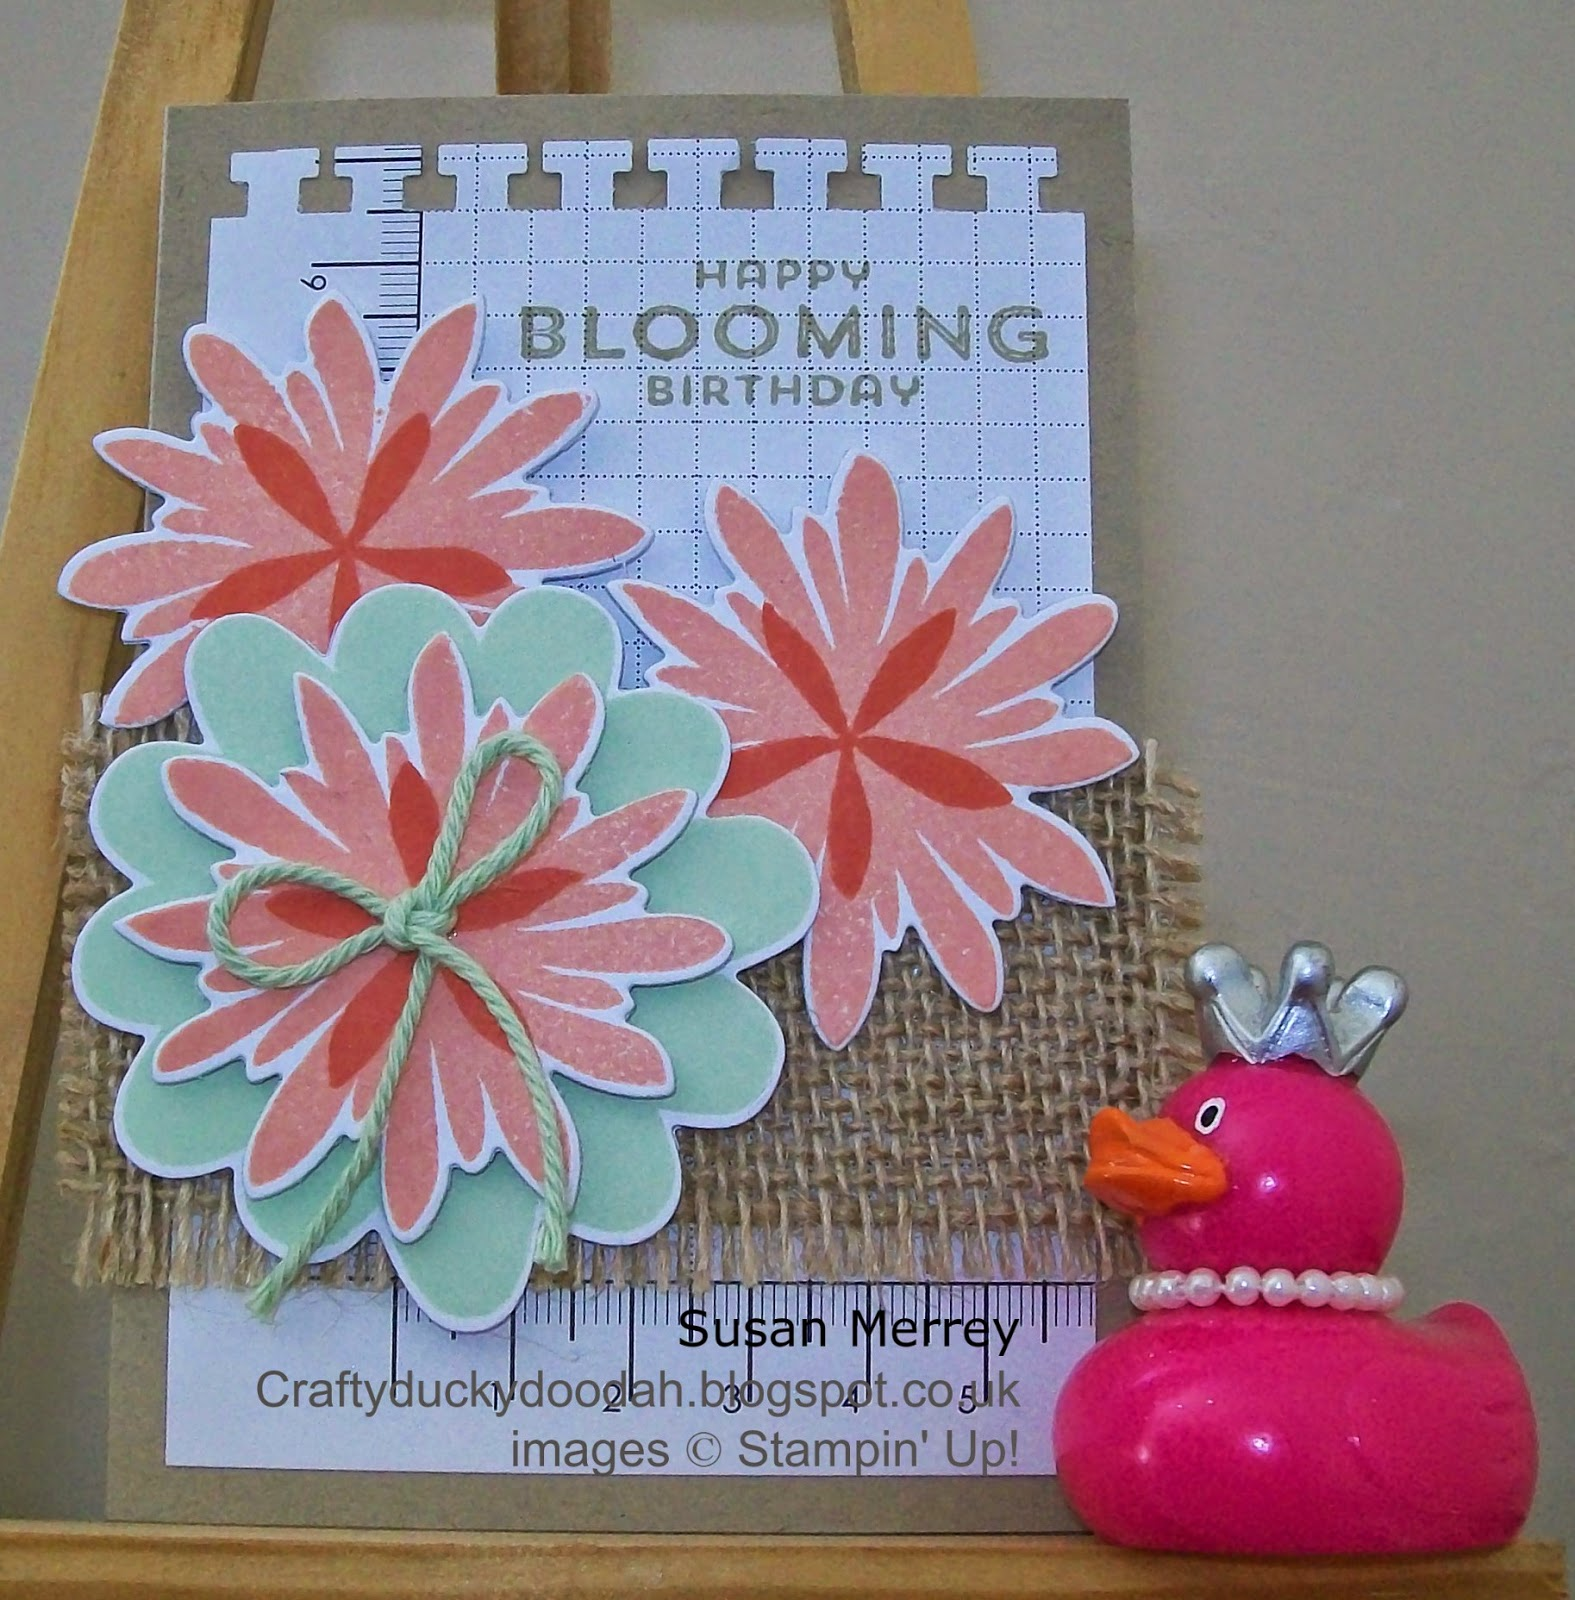 Stampin' Up!, Flower Patch, Flower Fair Framelits, Craftyduckydoodah!